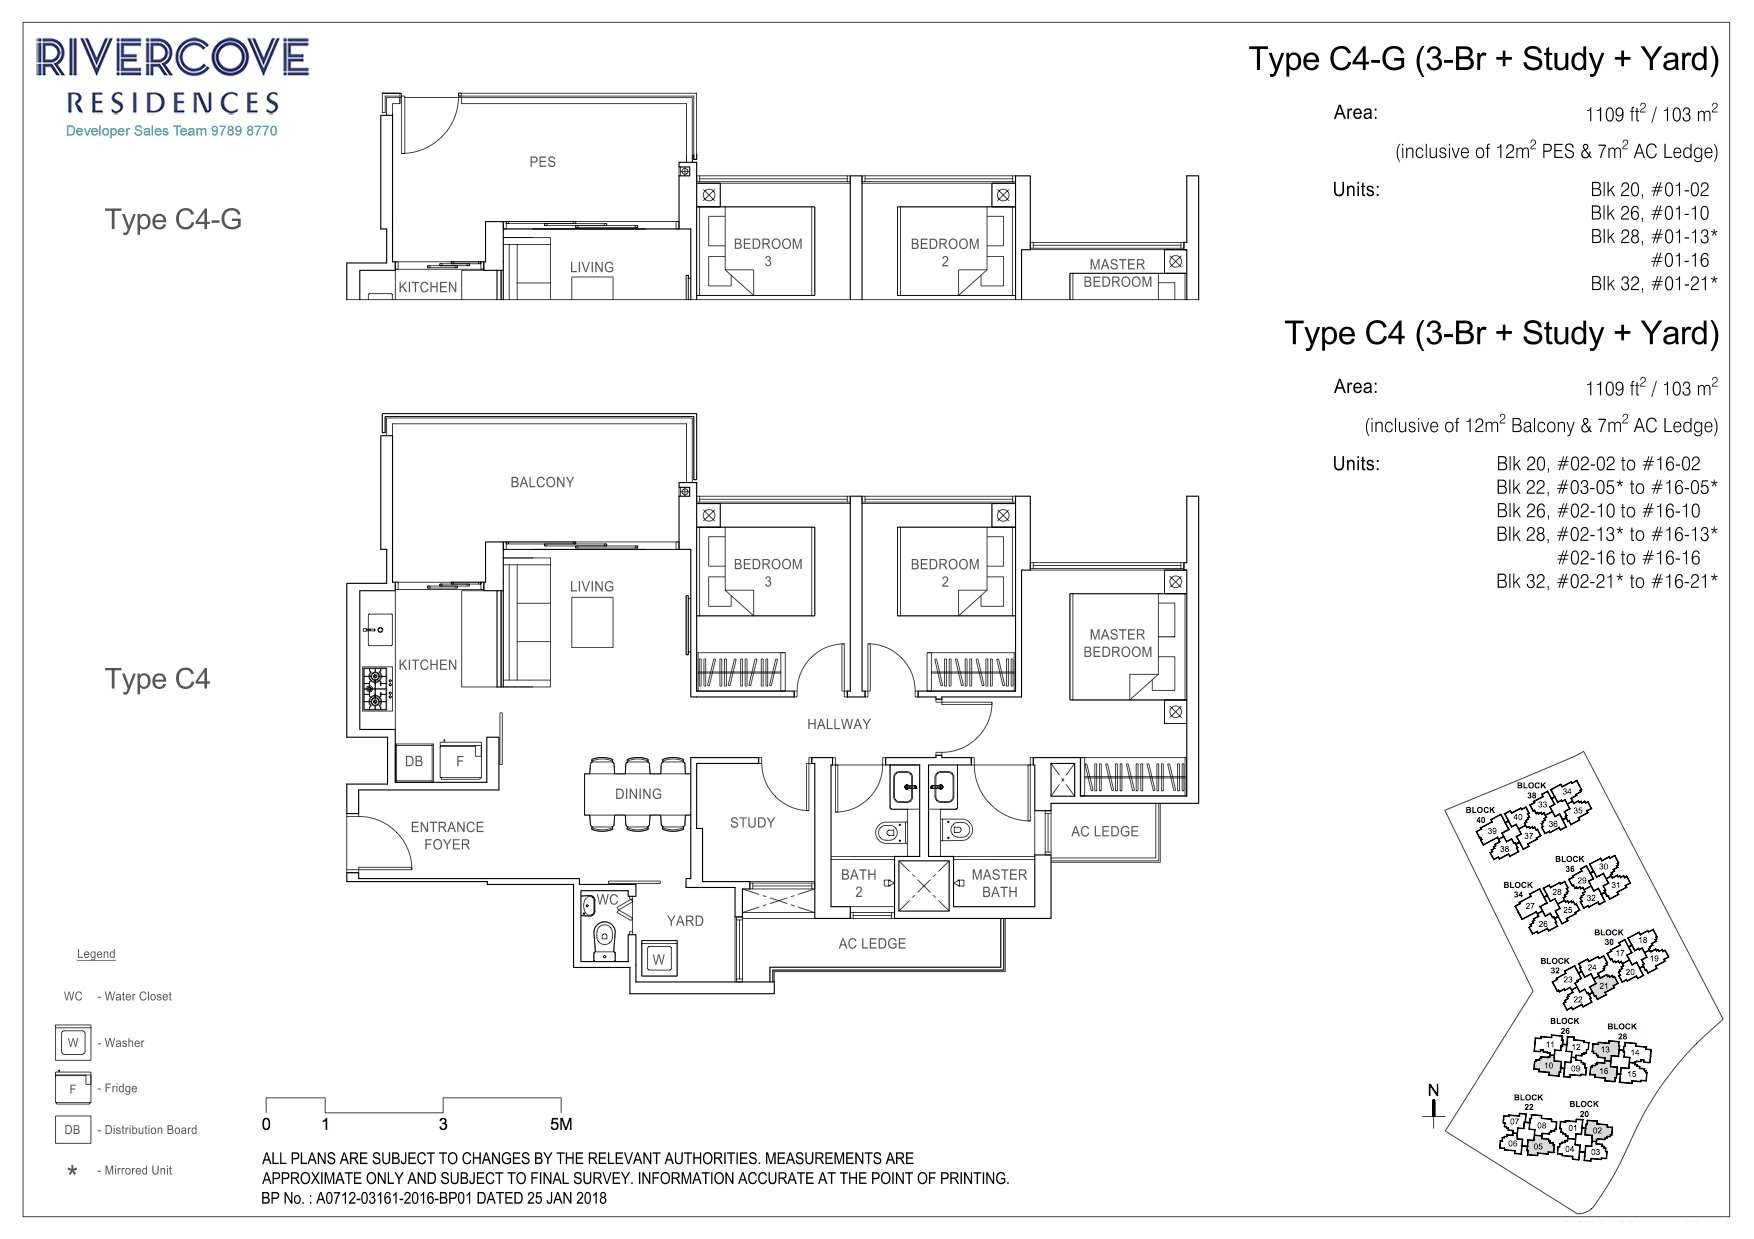 Rivercove Residences Floorplan Type C4